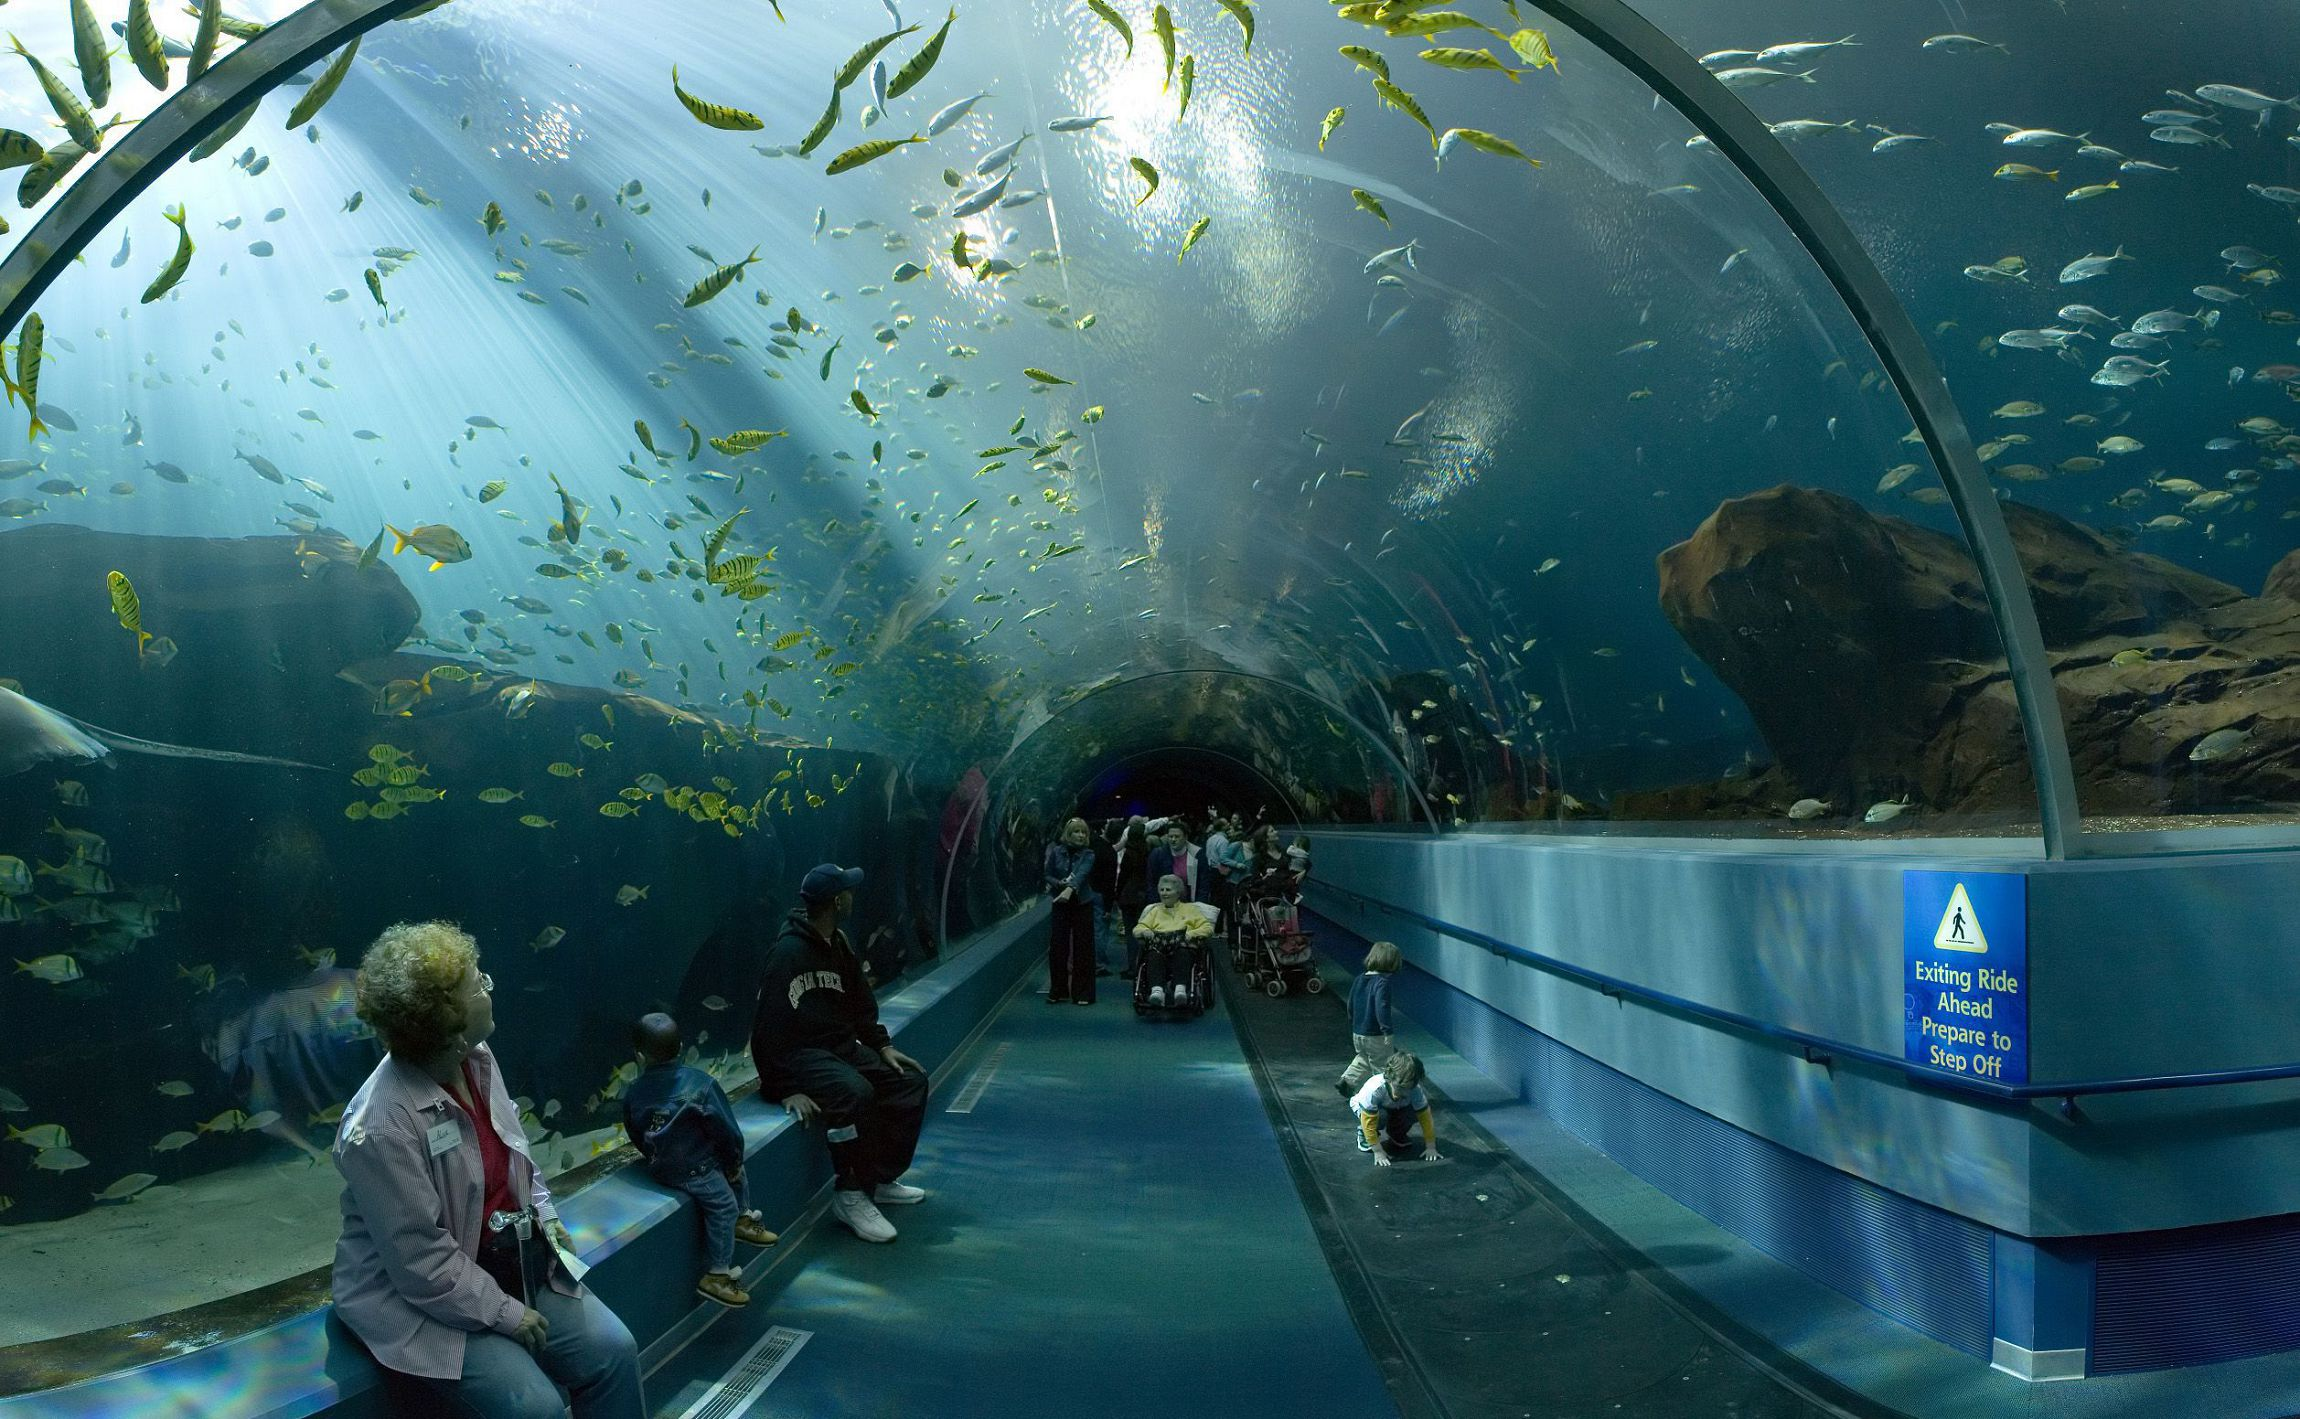 Aquarium Beautiful